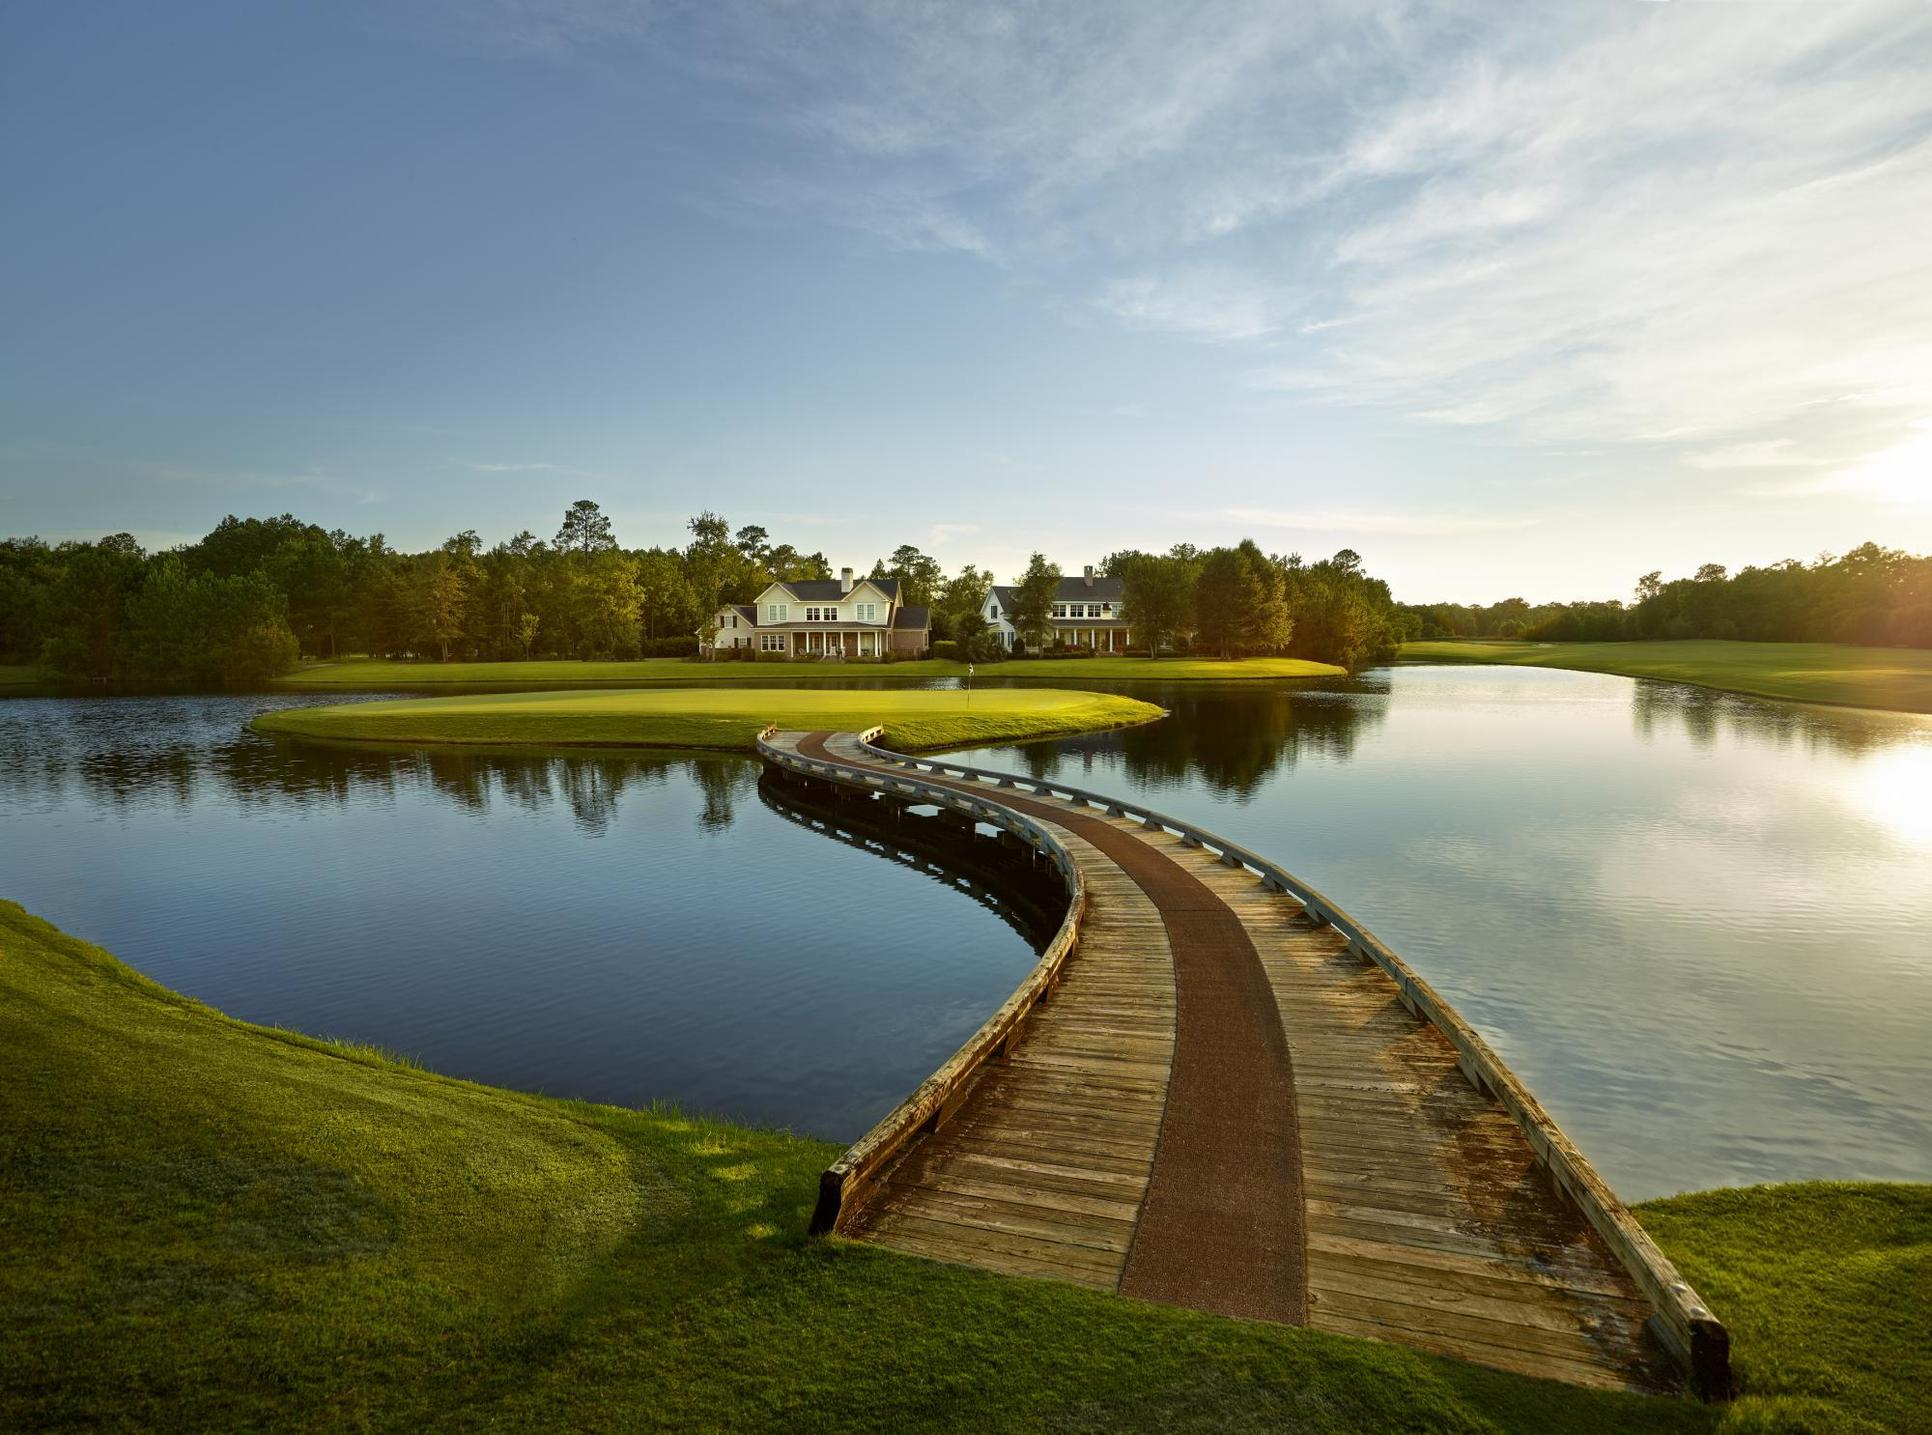 Davenport at Savannah Quarters